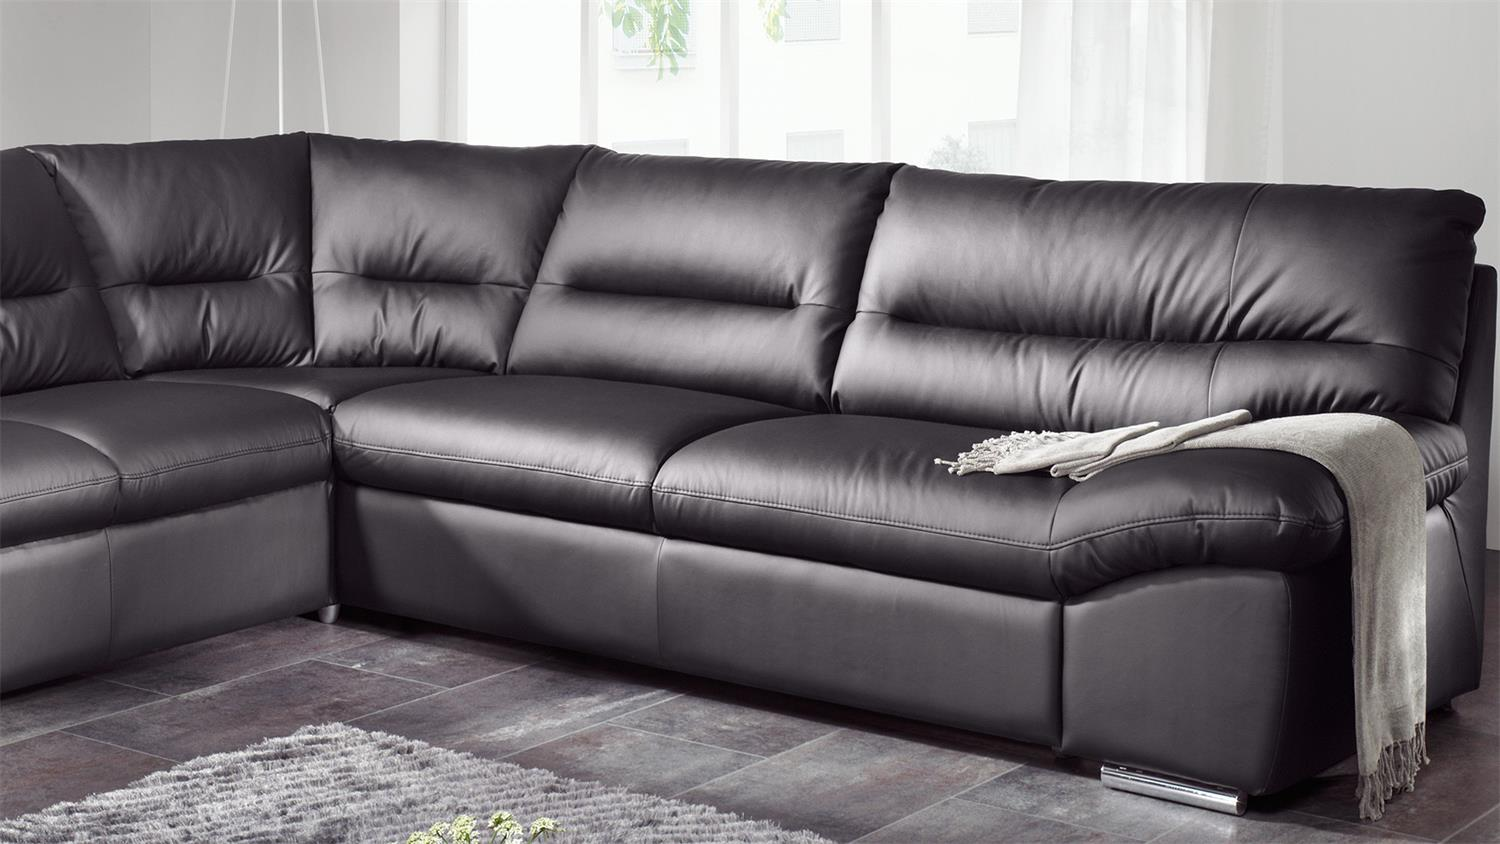 Ecksofa Bettfunktion Ecksofa William Polsterecke Sofa Schwarz Mit Bettfunktion